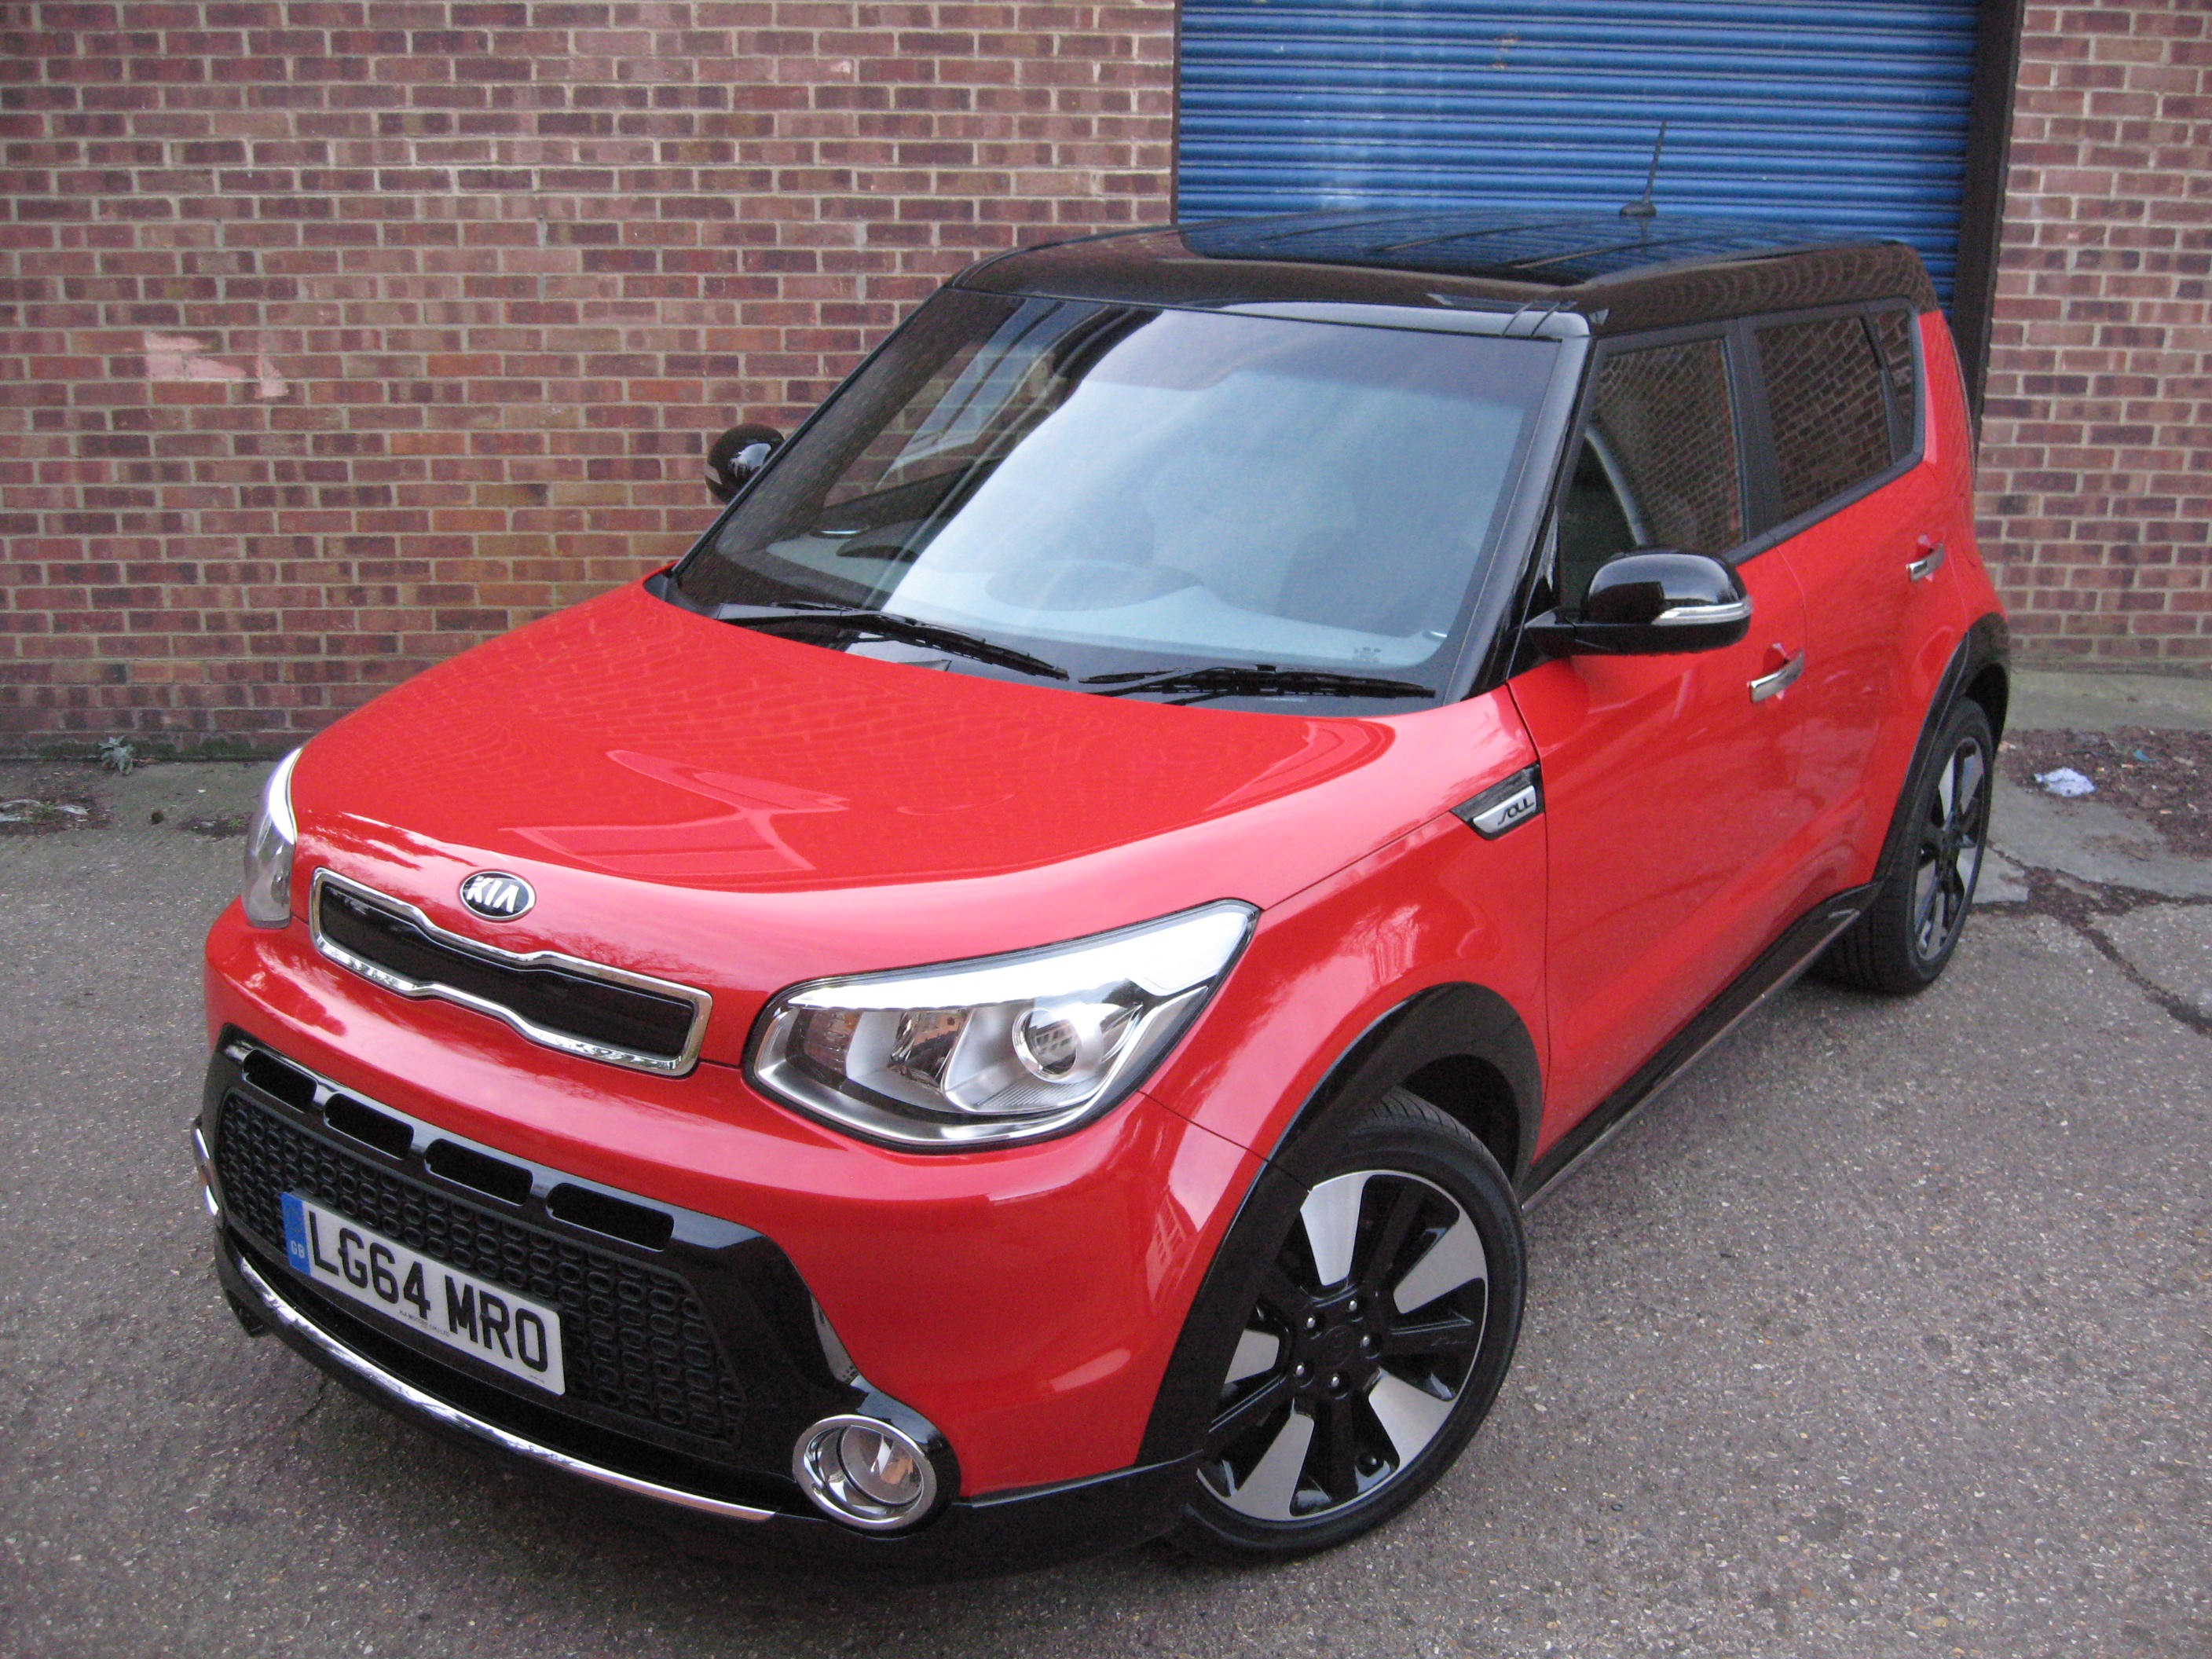 kia soul 1 6 crdi mixx high value package spoiled by unfit engine business car manager. Black Bedroom Furniture Sets. Home Design Ideas